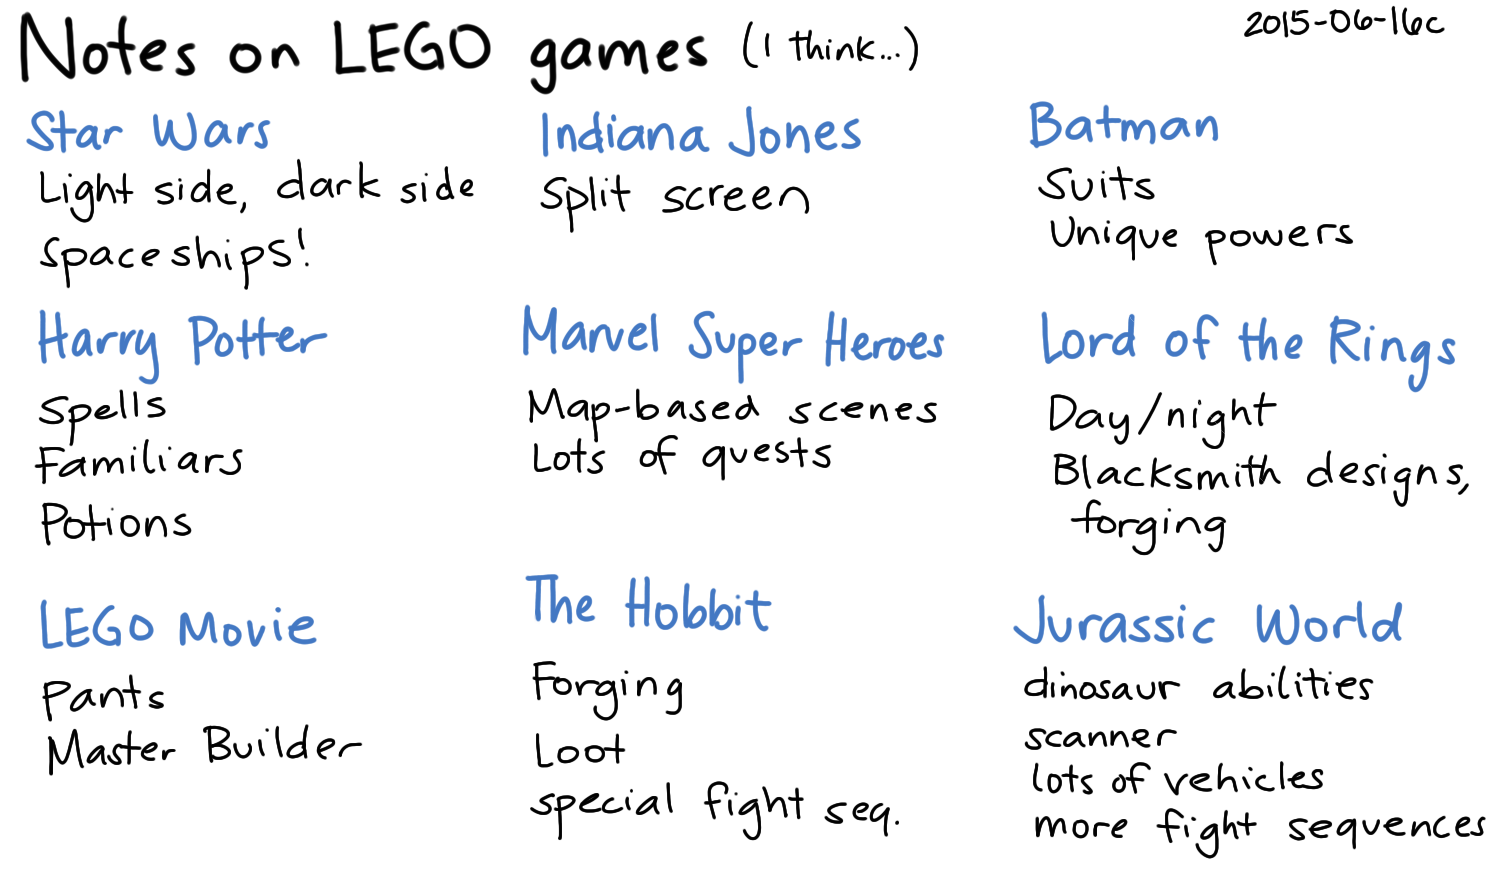 2015-06-16c Notes on LEGO games -- index cards #lego #gaming.png